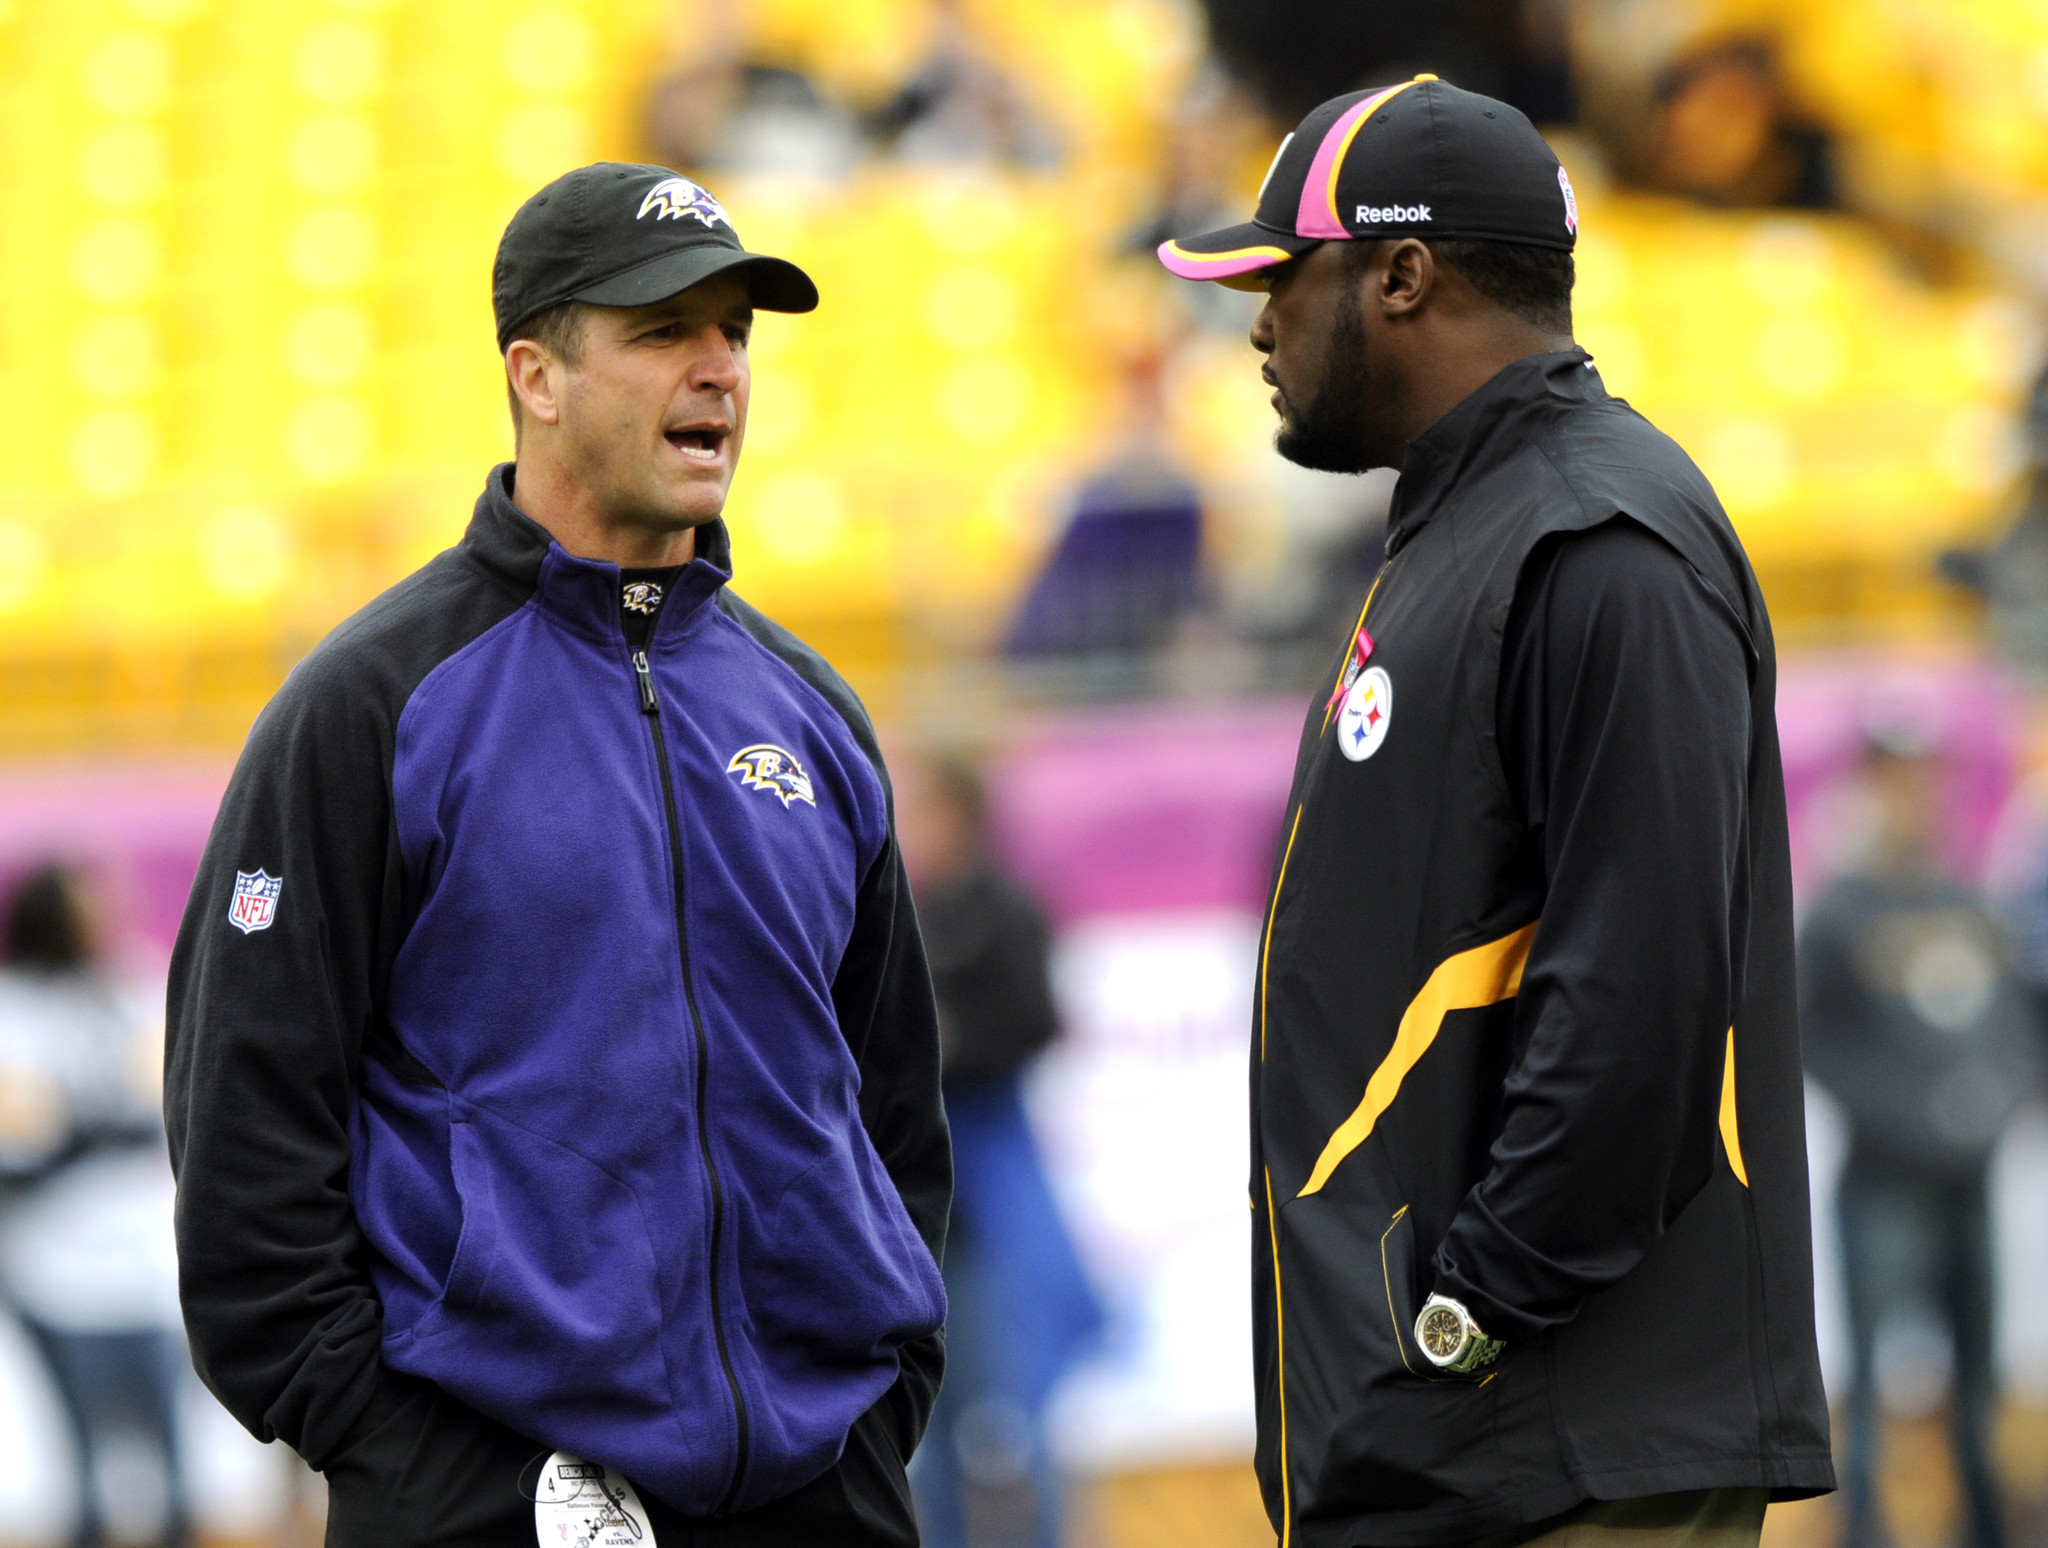 Despite losses, AFC North coaches expect another tough year in …